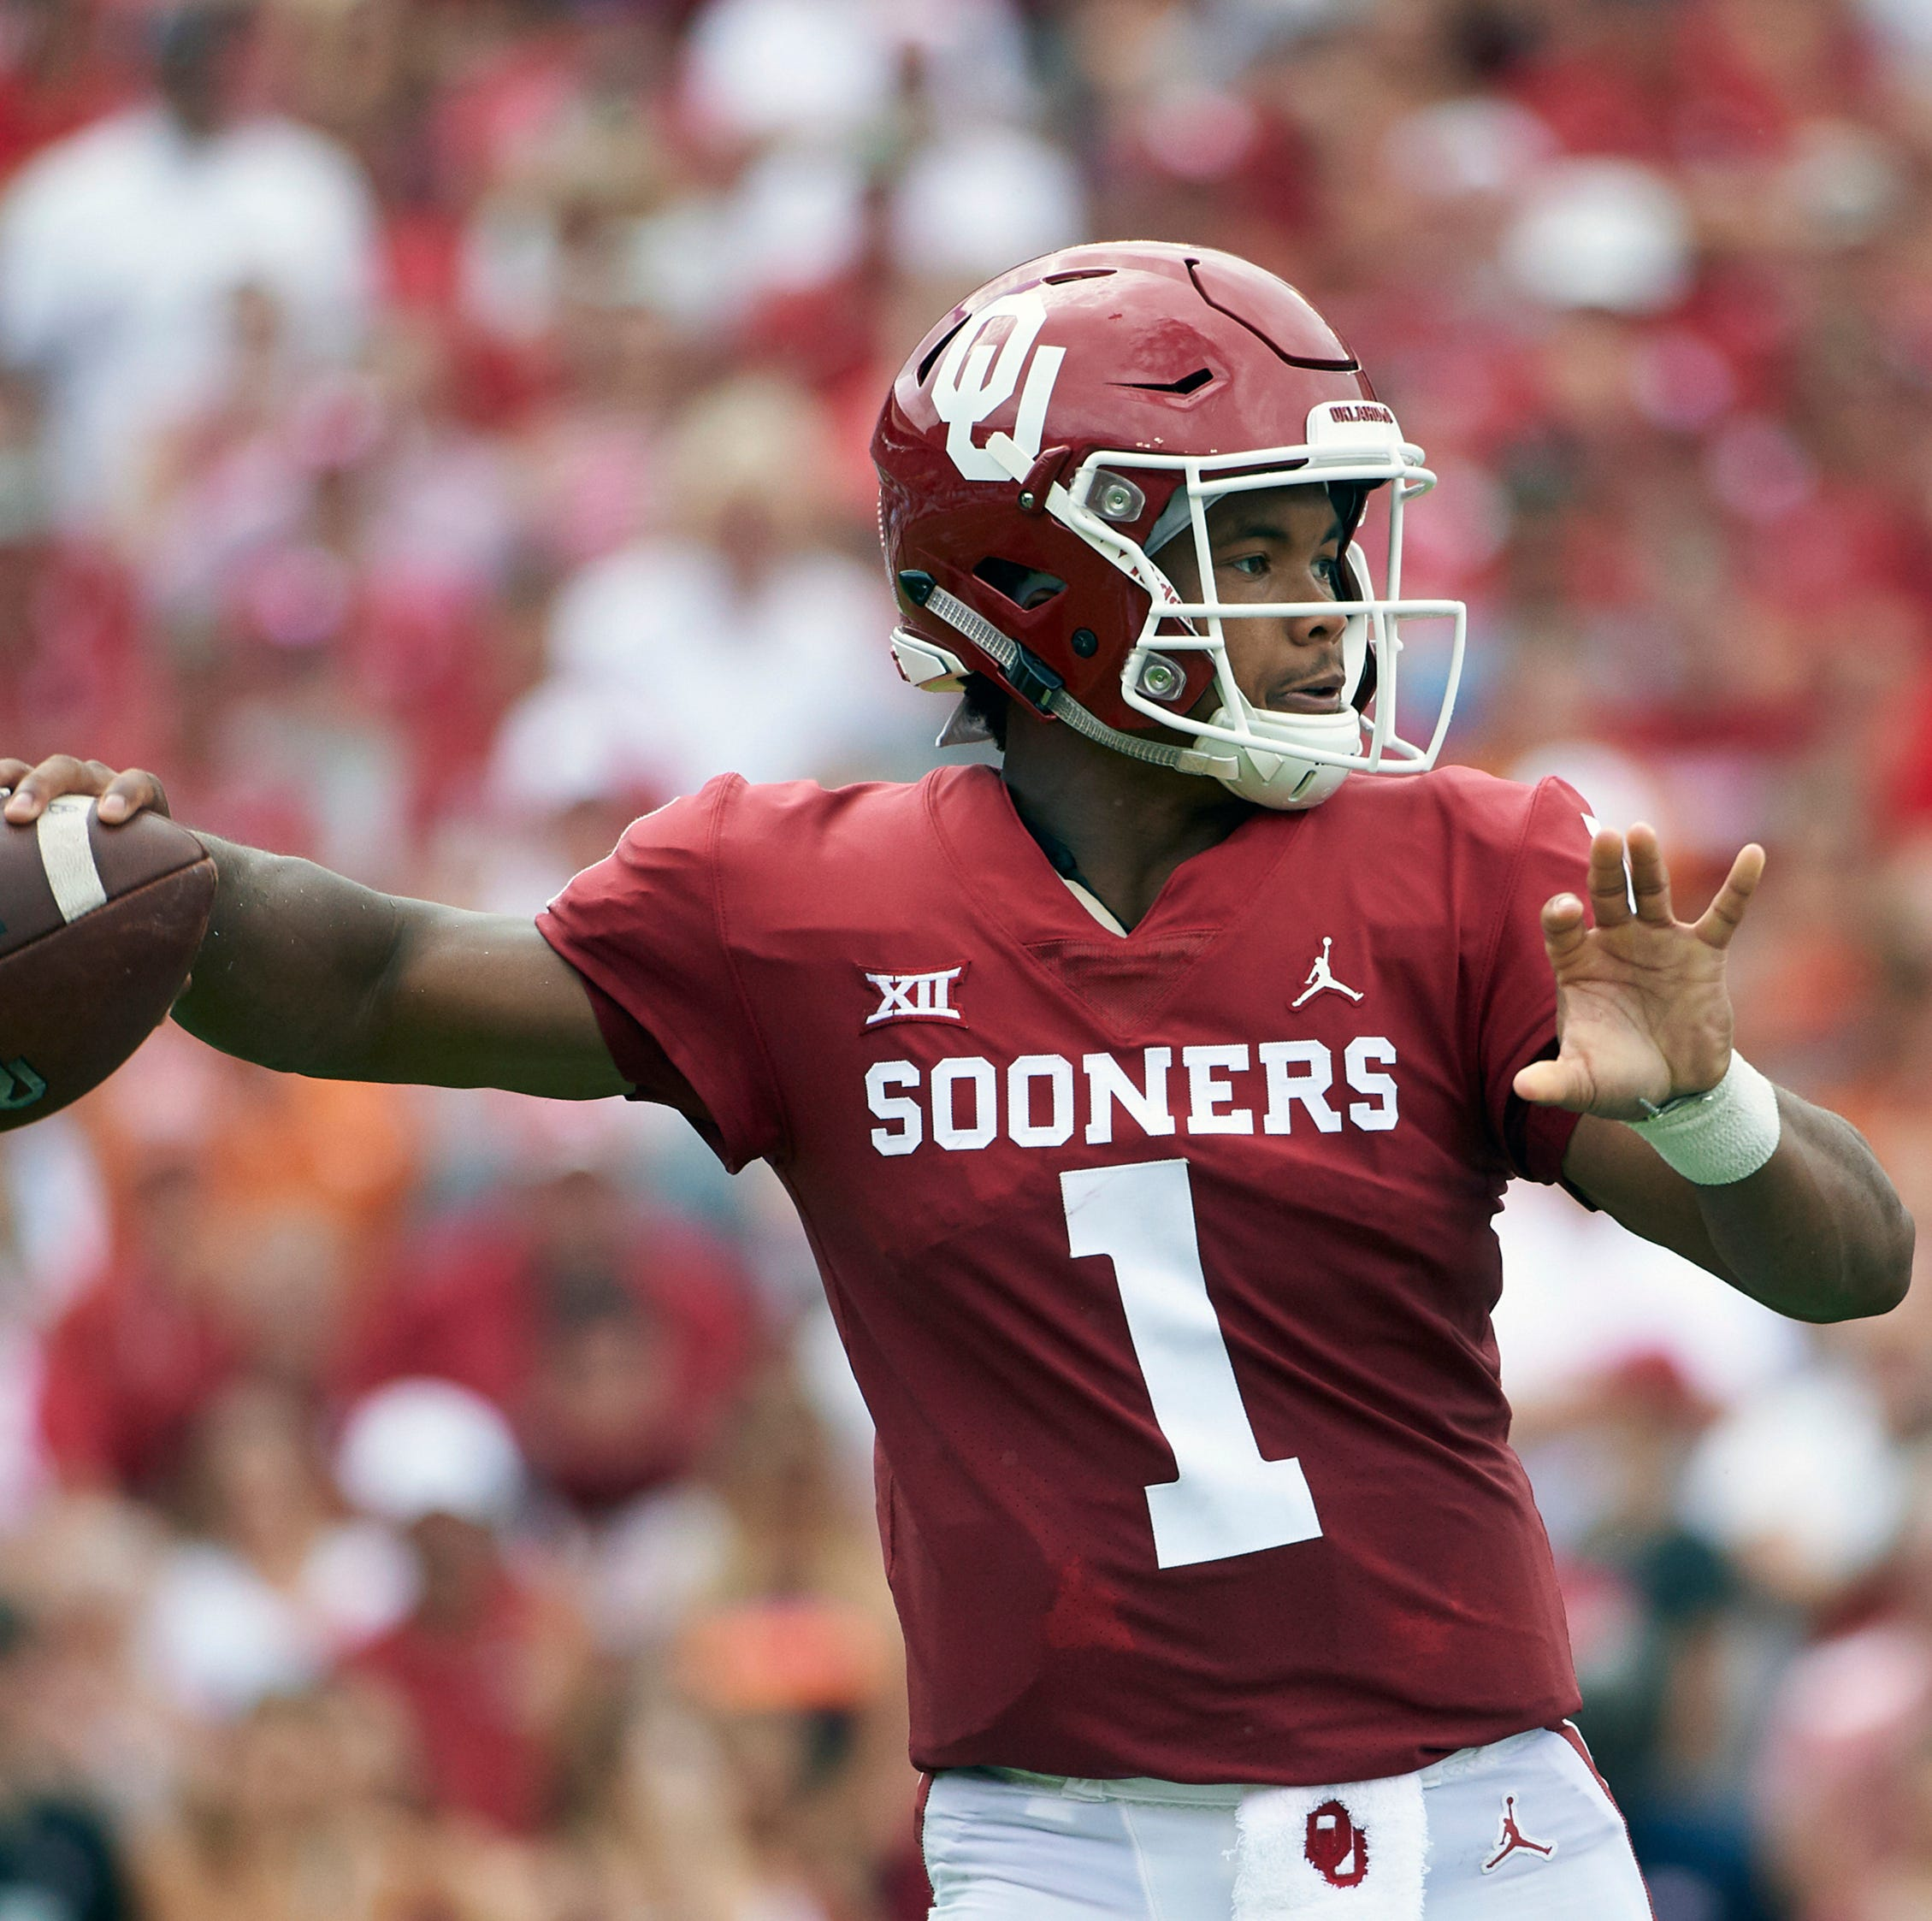 Martin Frank's 1st-round NFL mock draft: How teams drafting QBs will help the Eagles